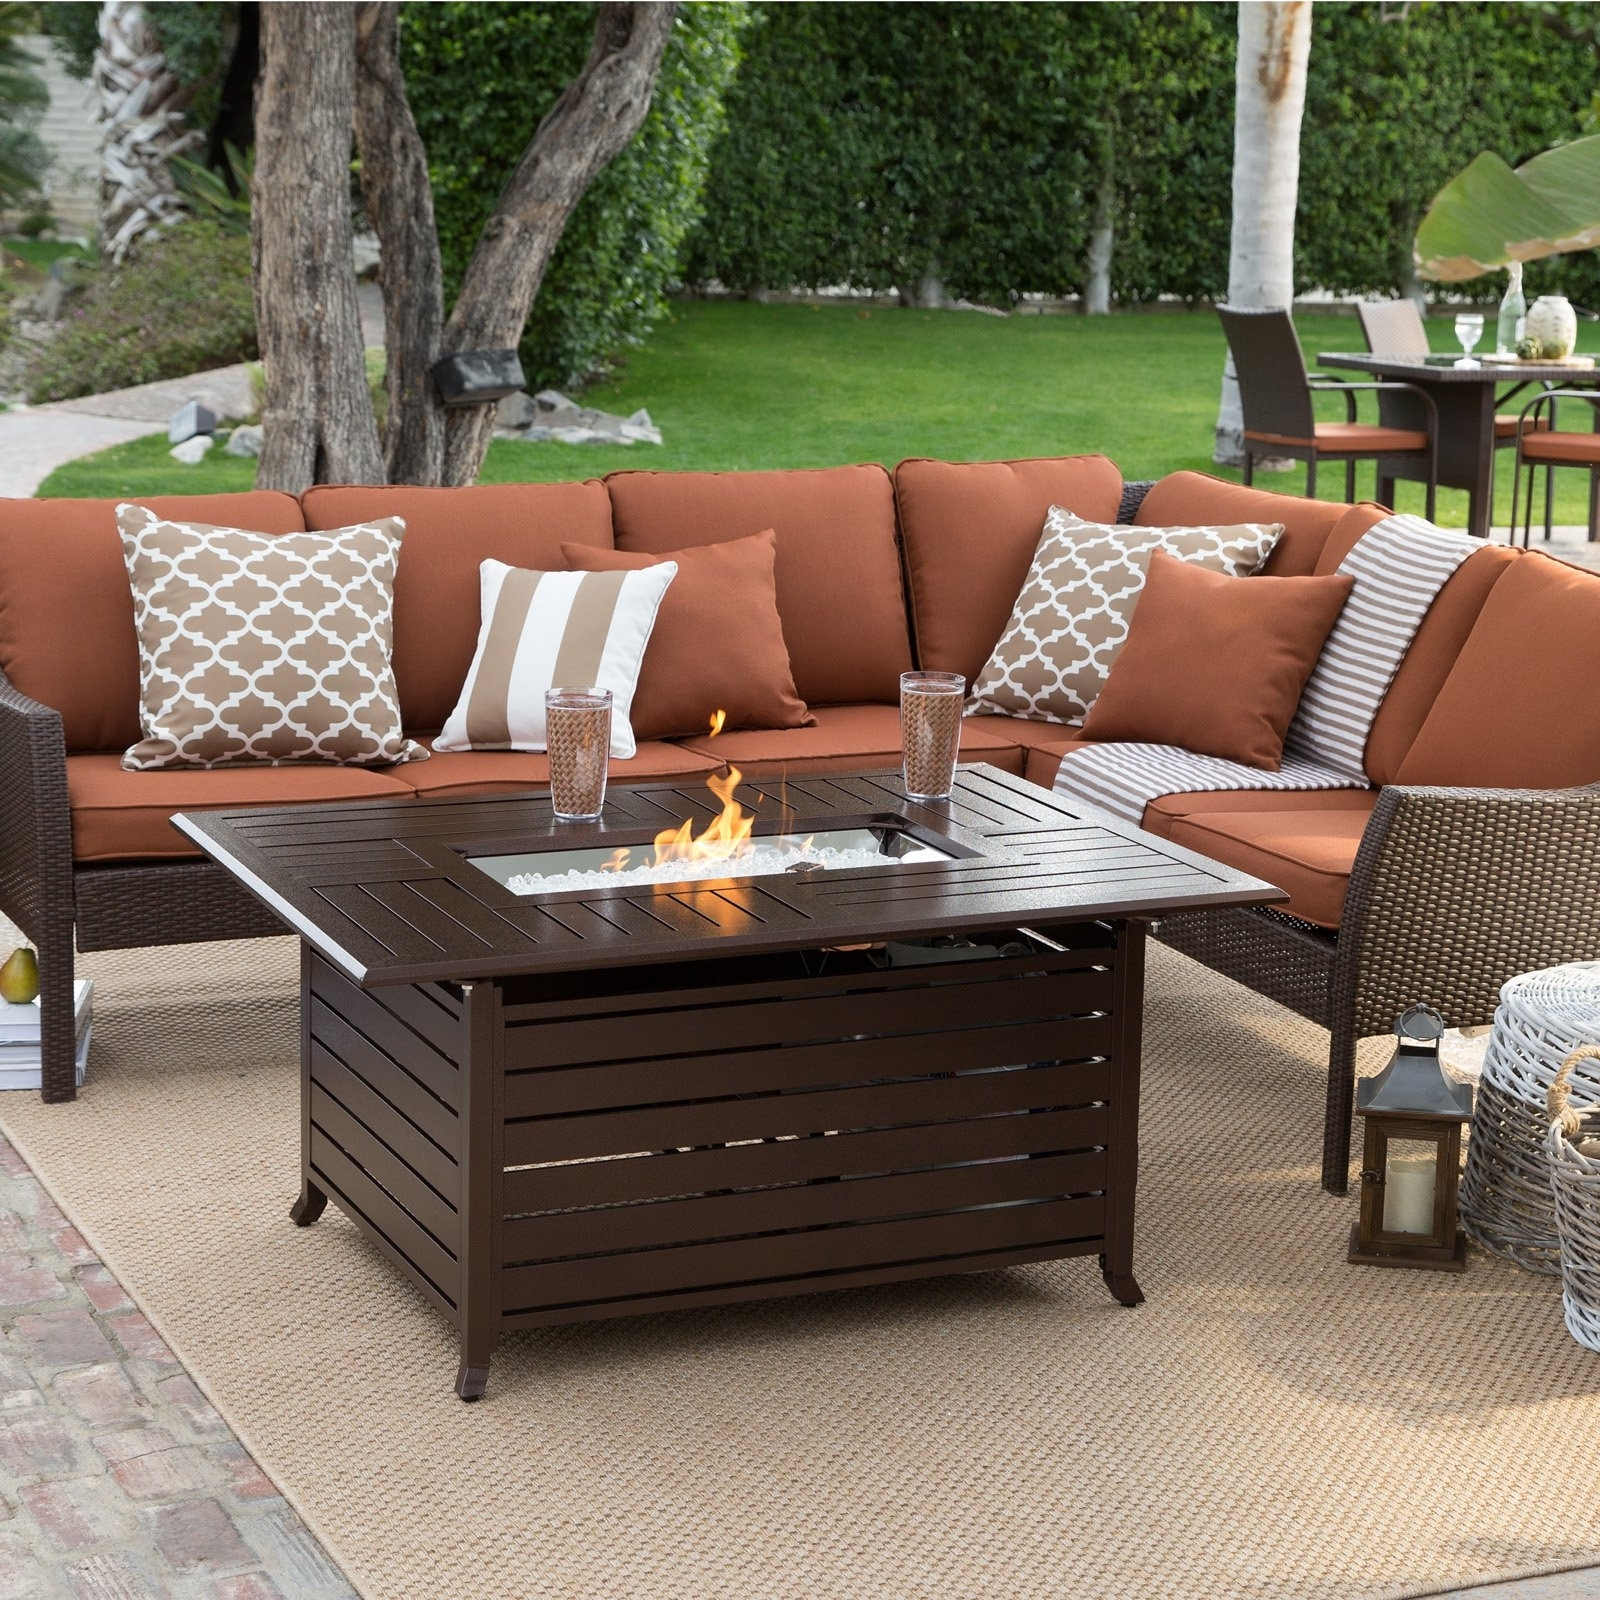 Patio Conversation Sets With Fire Pit Great Wicker Conversation Within Most Current Patio Furniture Conversation Sets With Fire Pit (View 6 of 20)